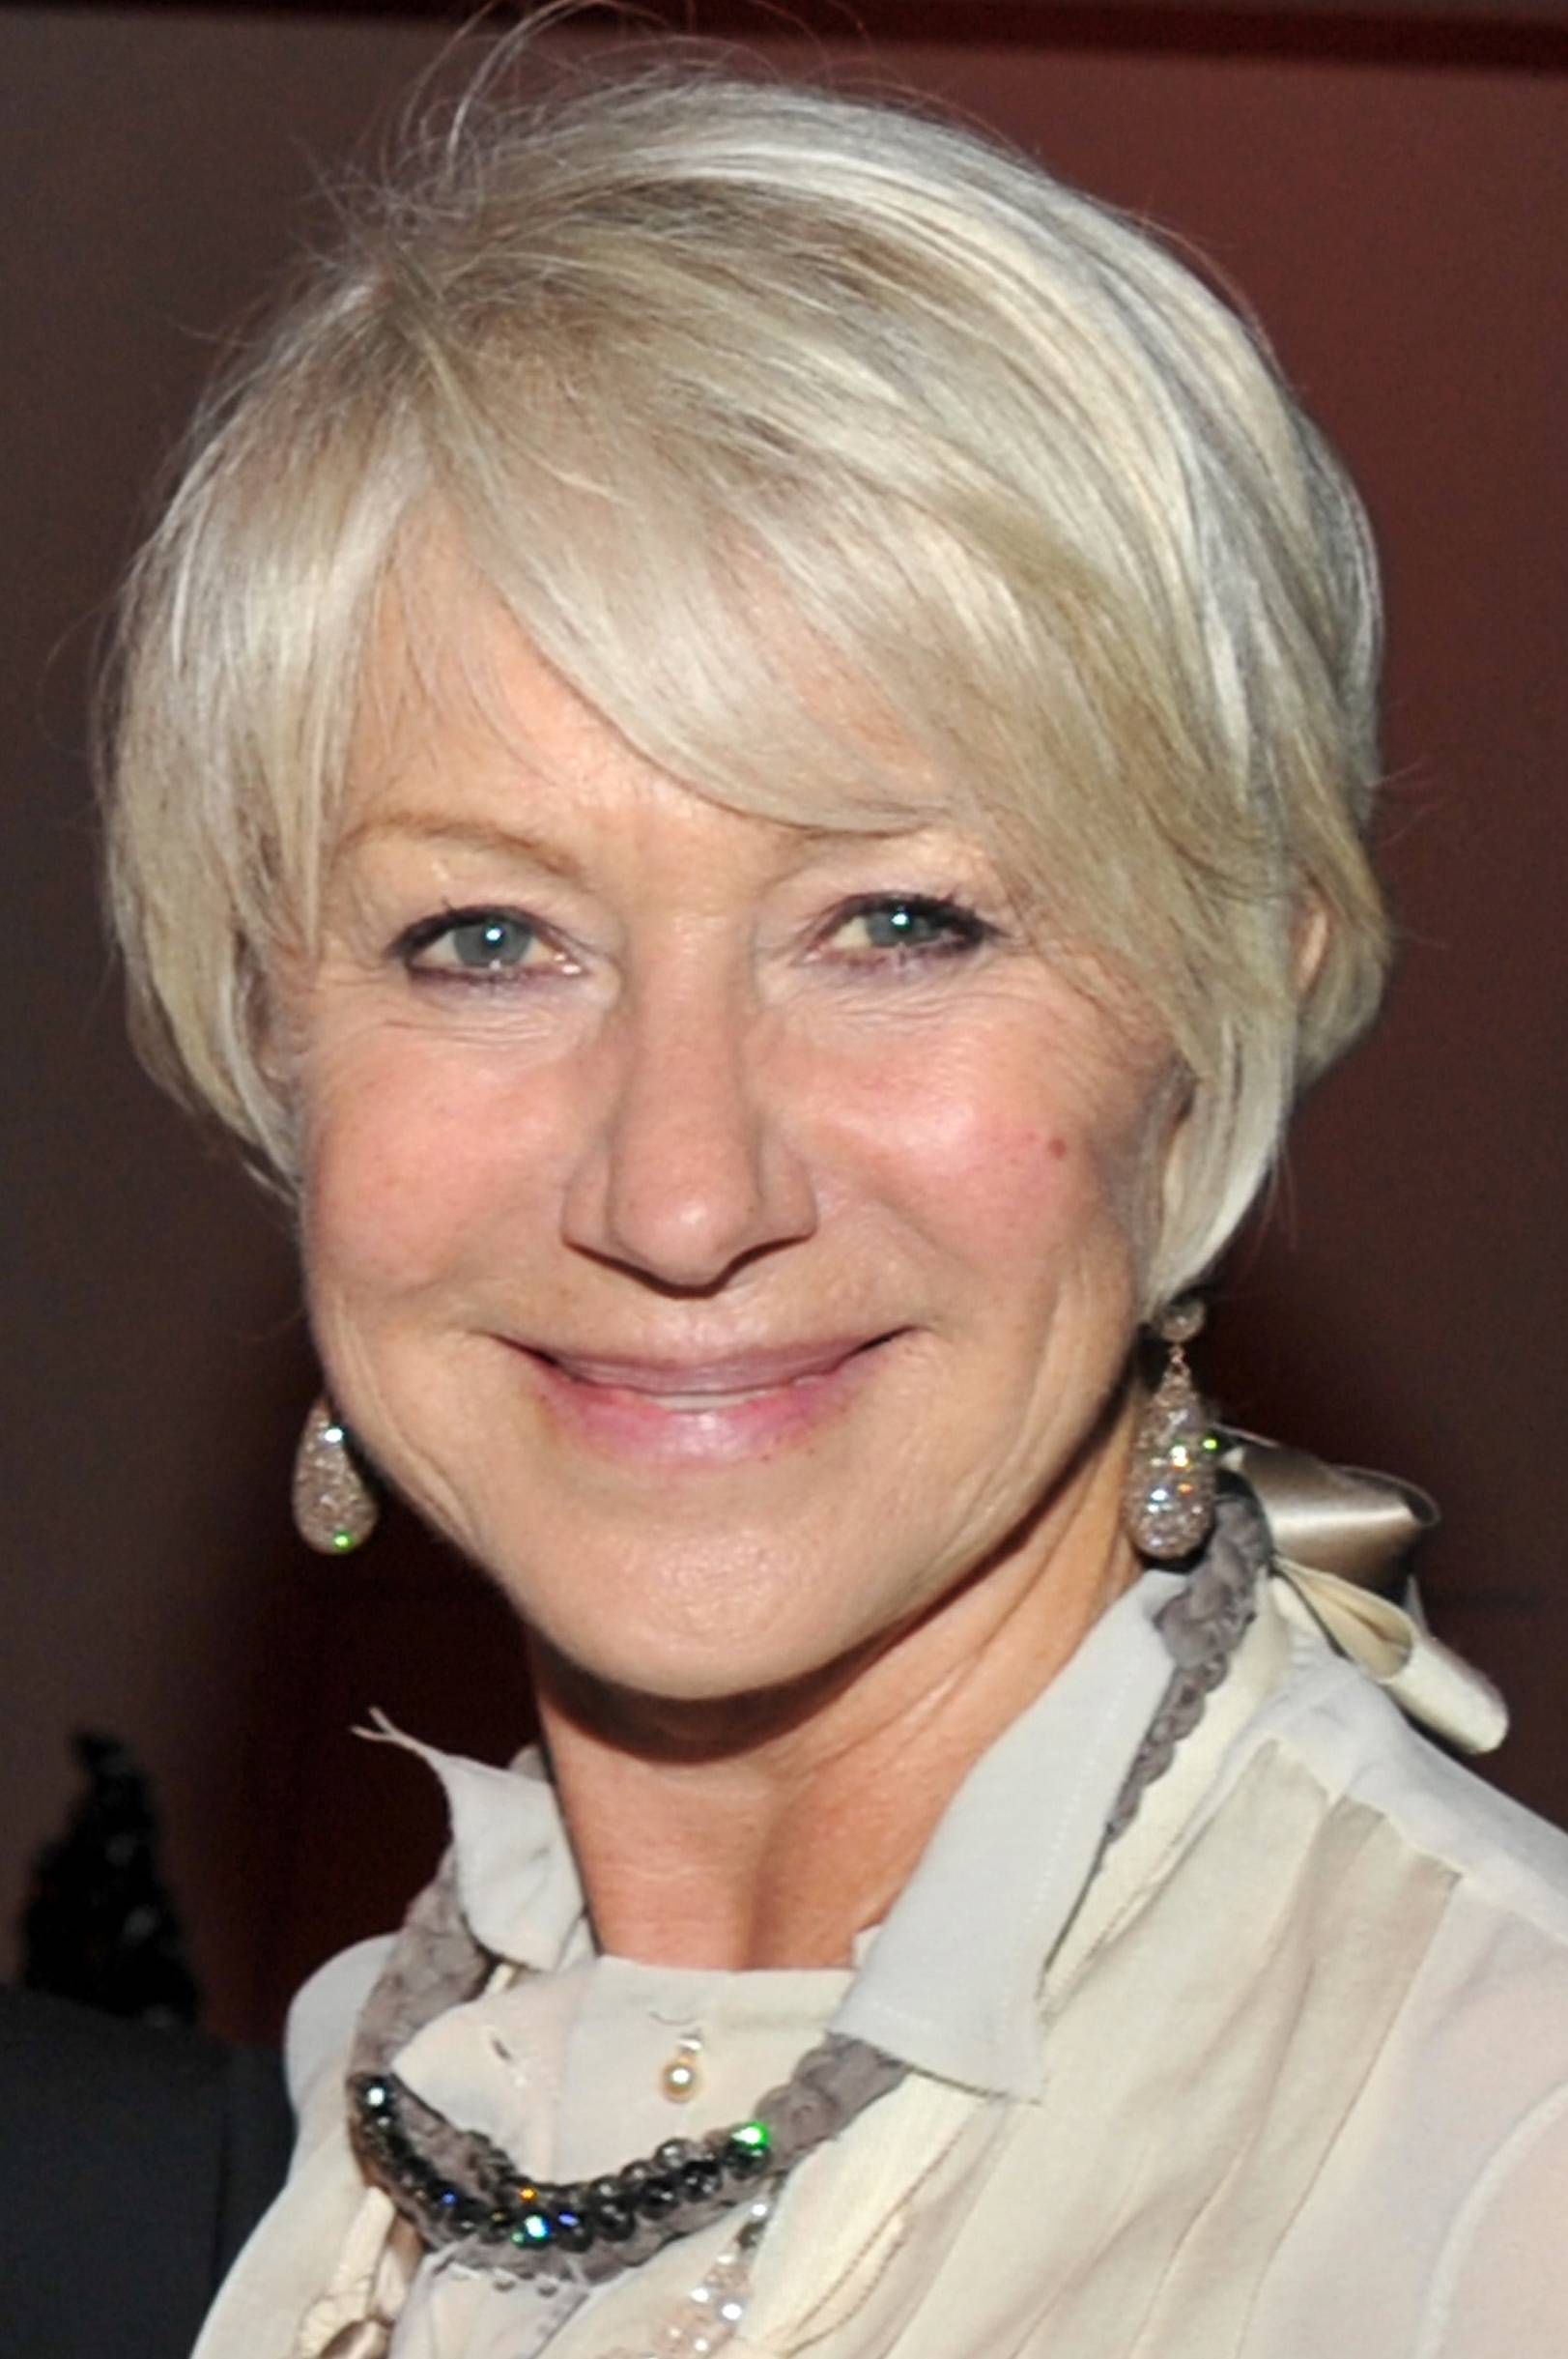 Helen Mirren – now there's a ballsy lass with talent to spare. Is ...